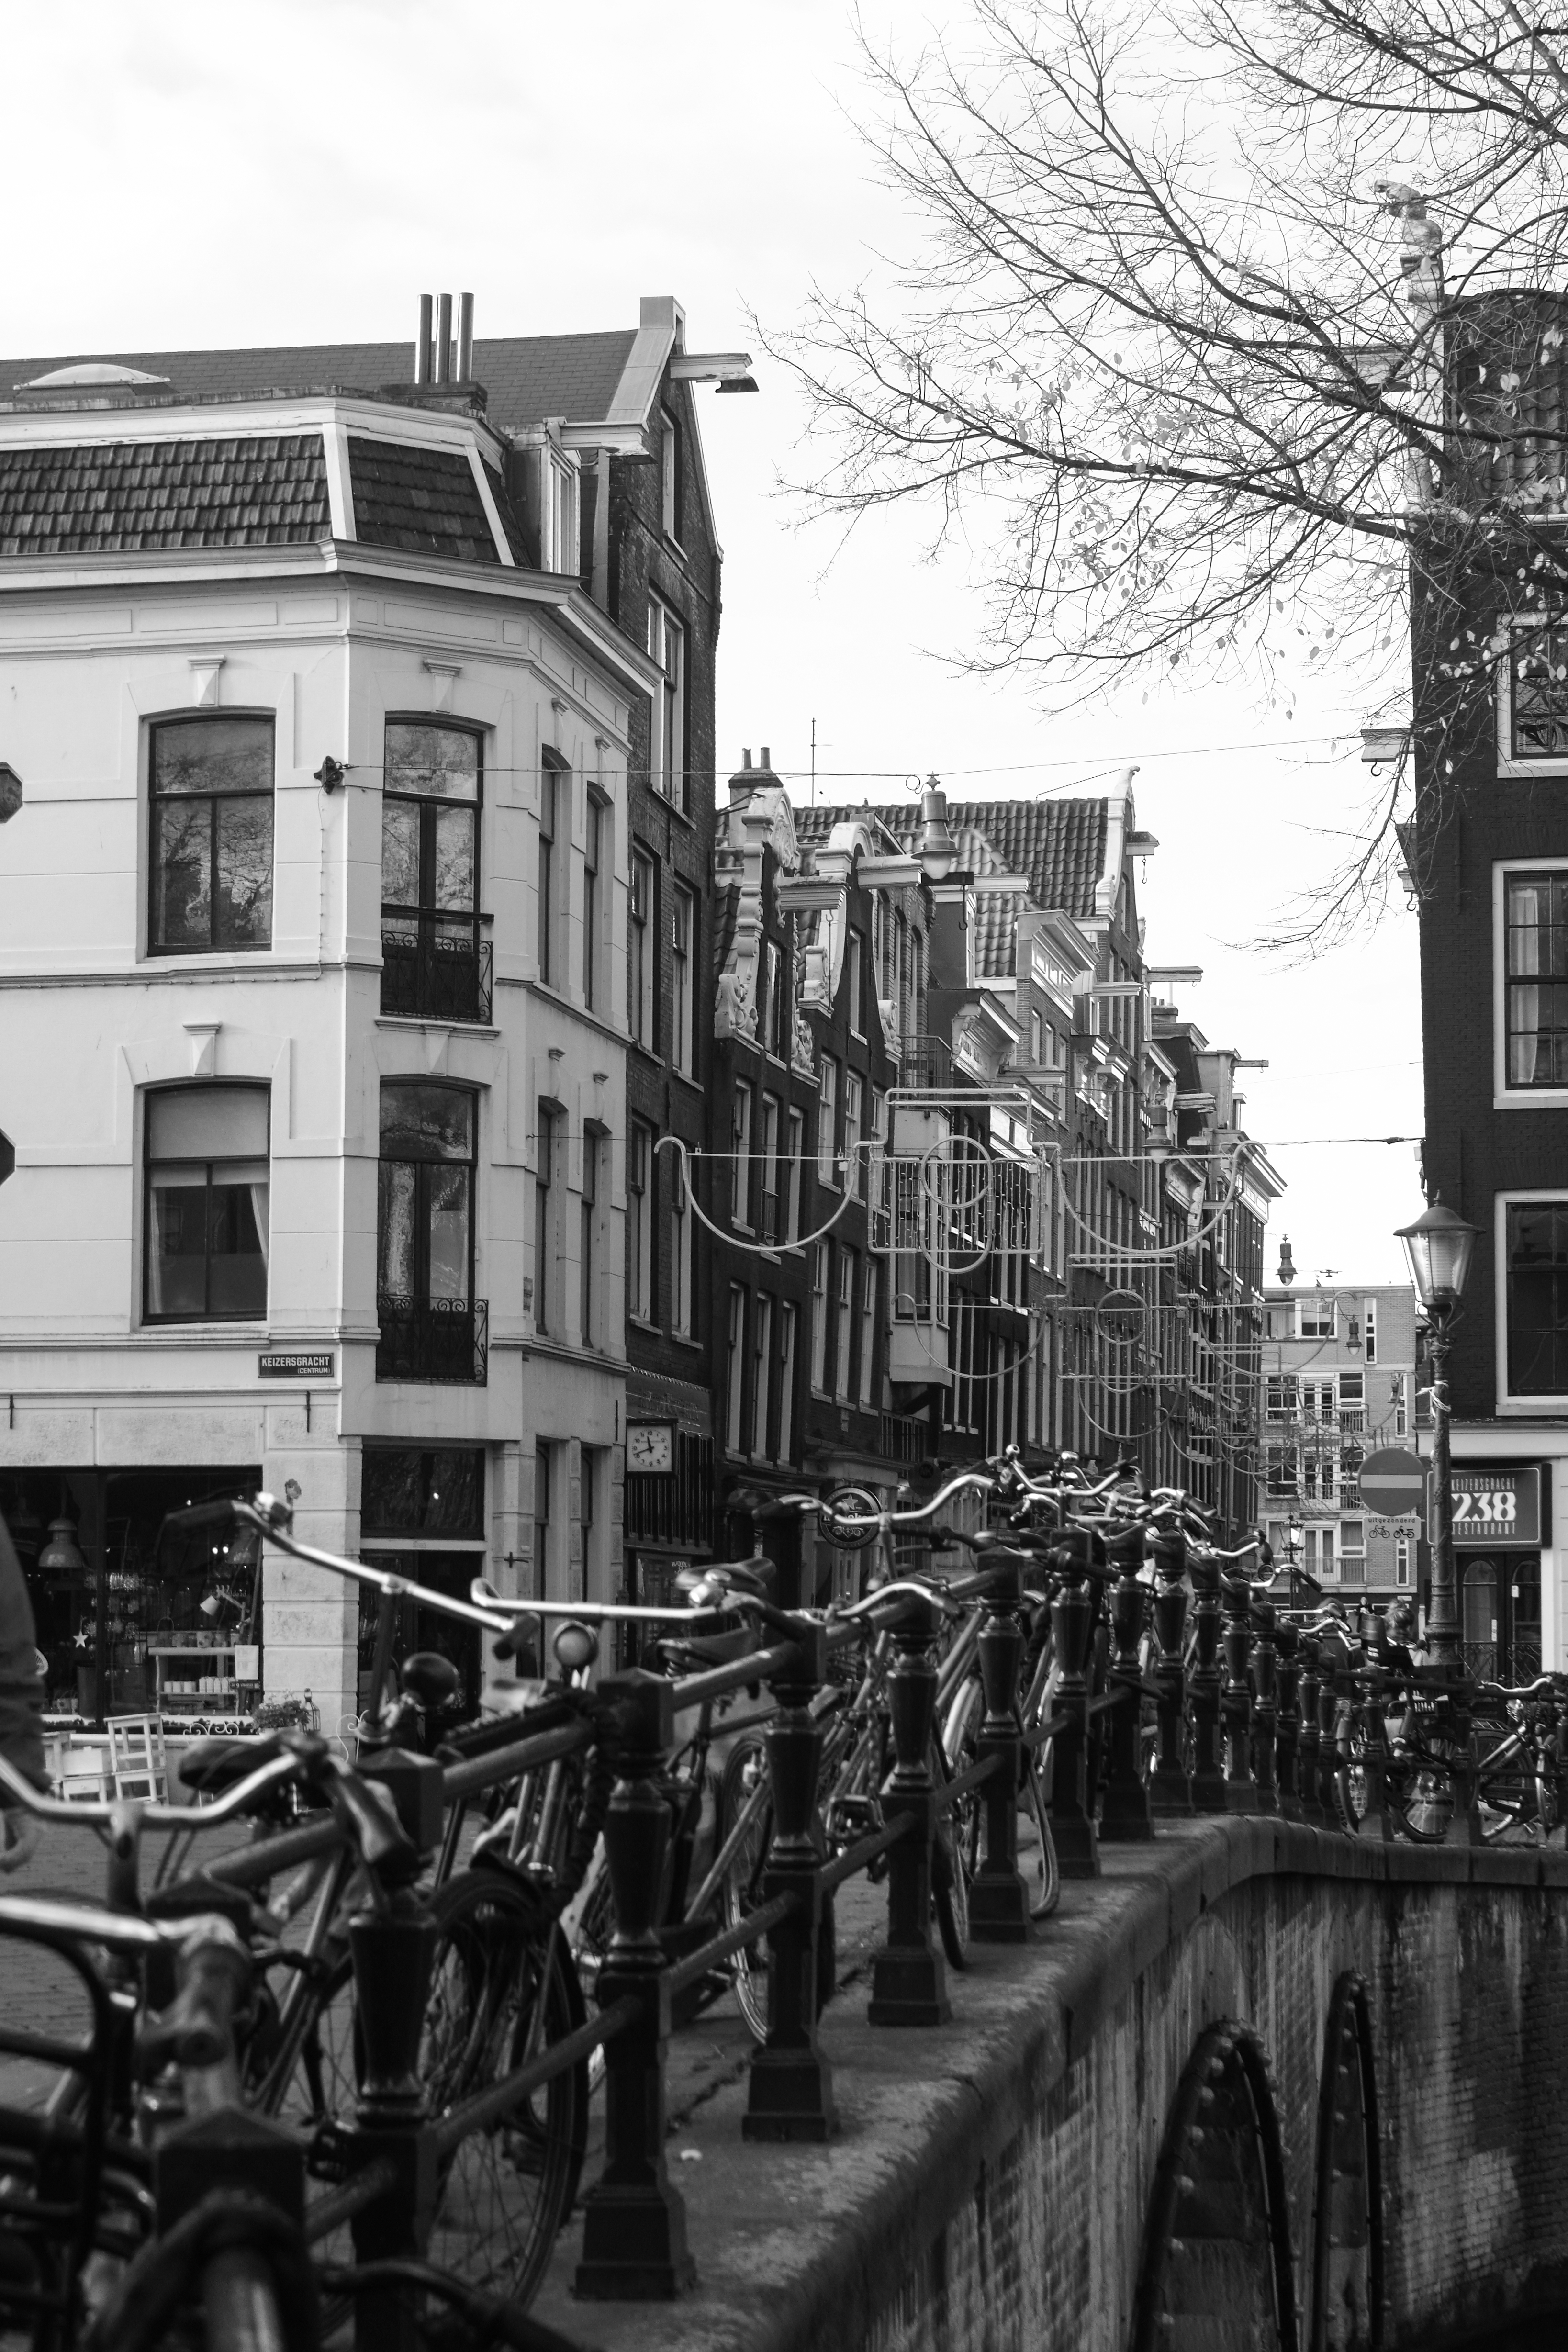 Bicycles, Amsterdam, Netherlands, Europe